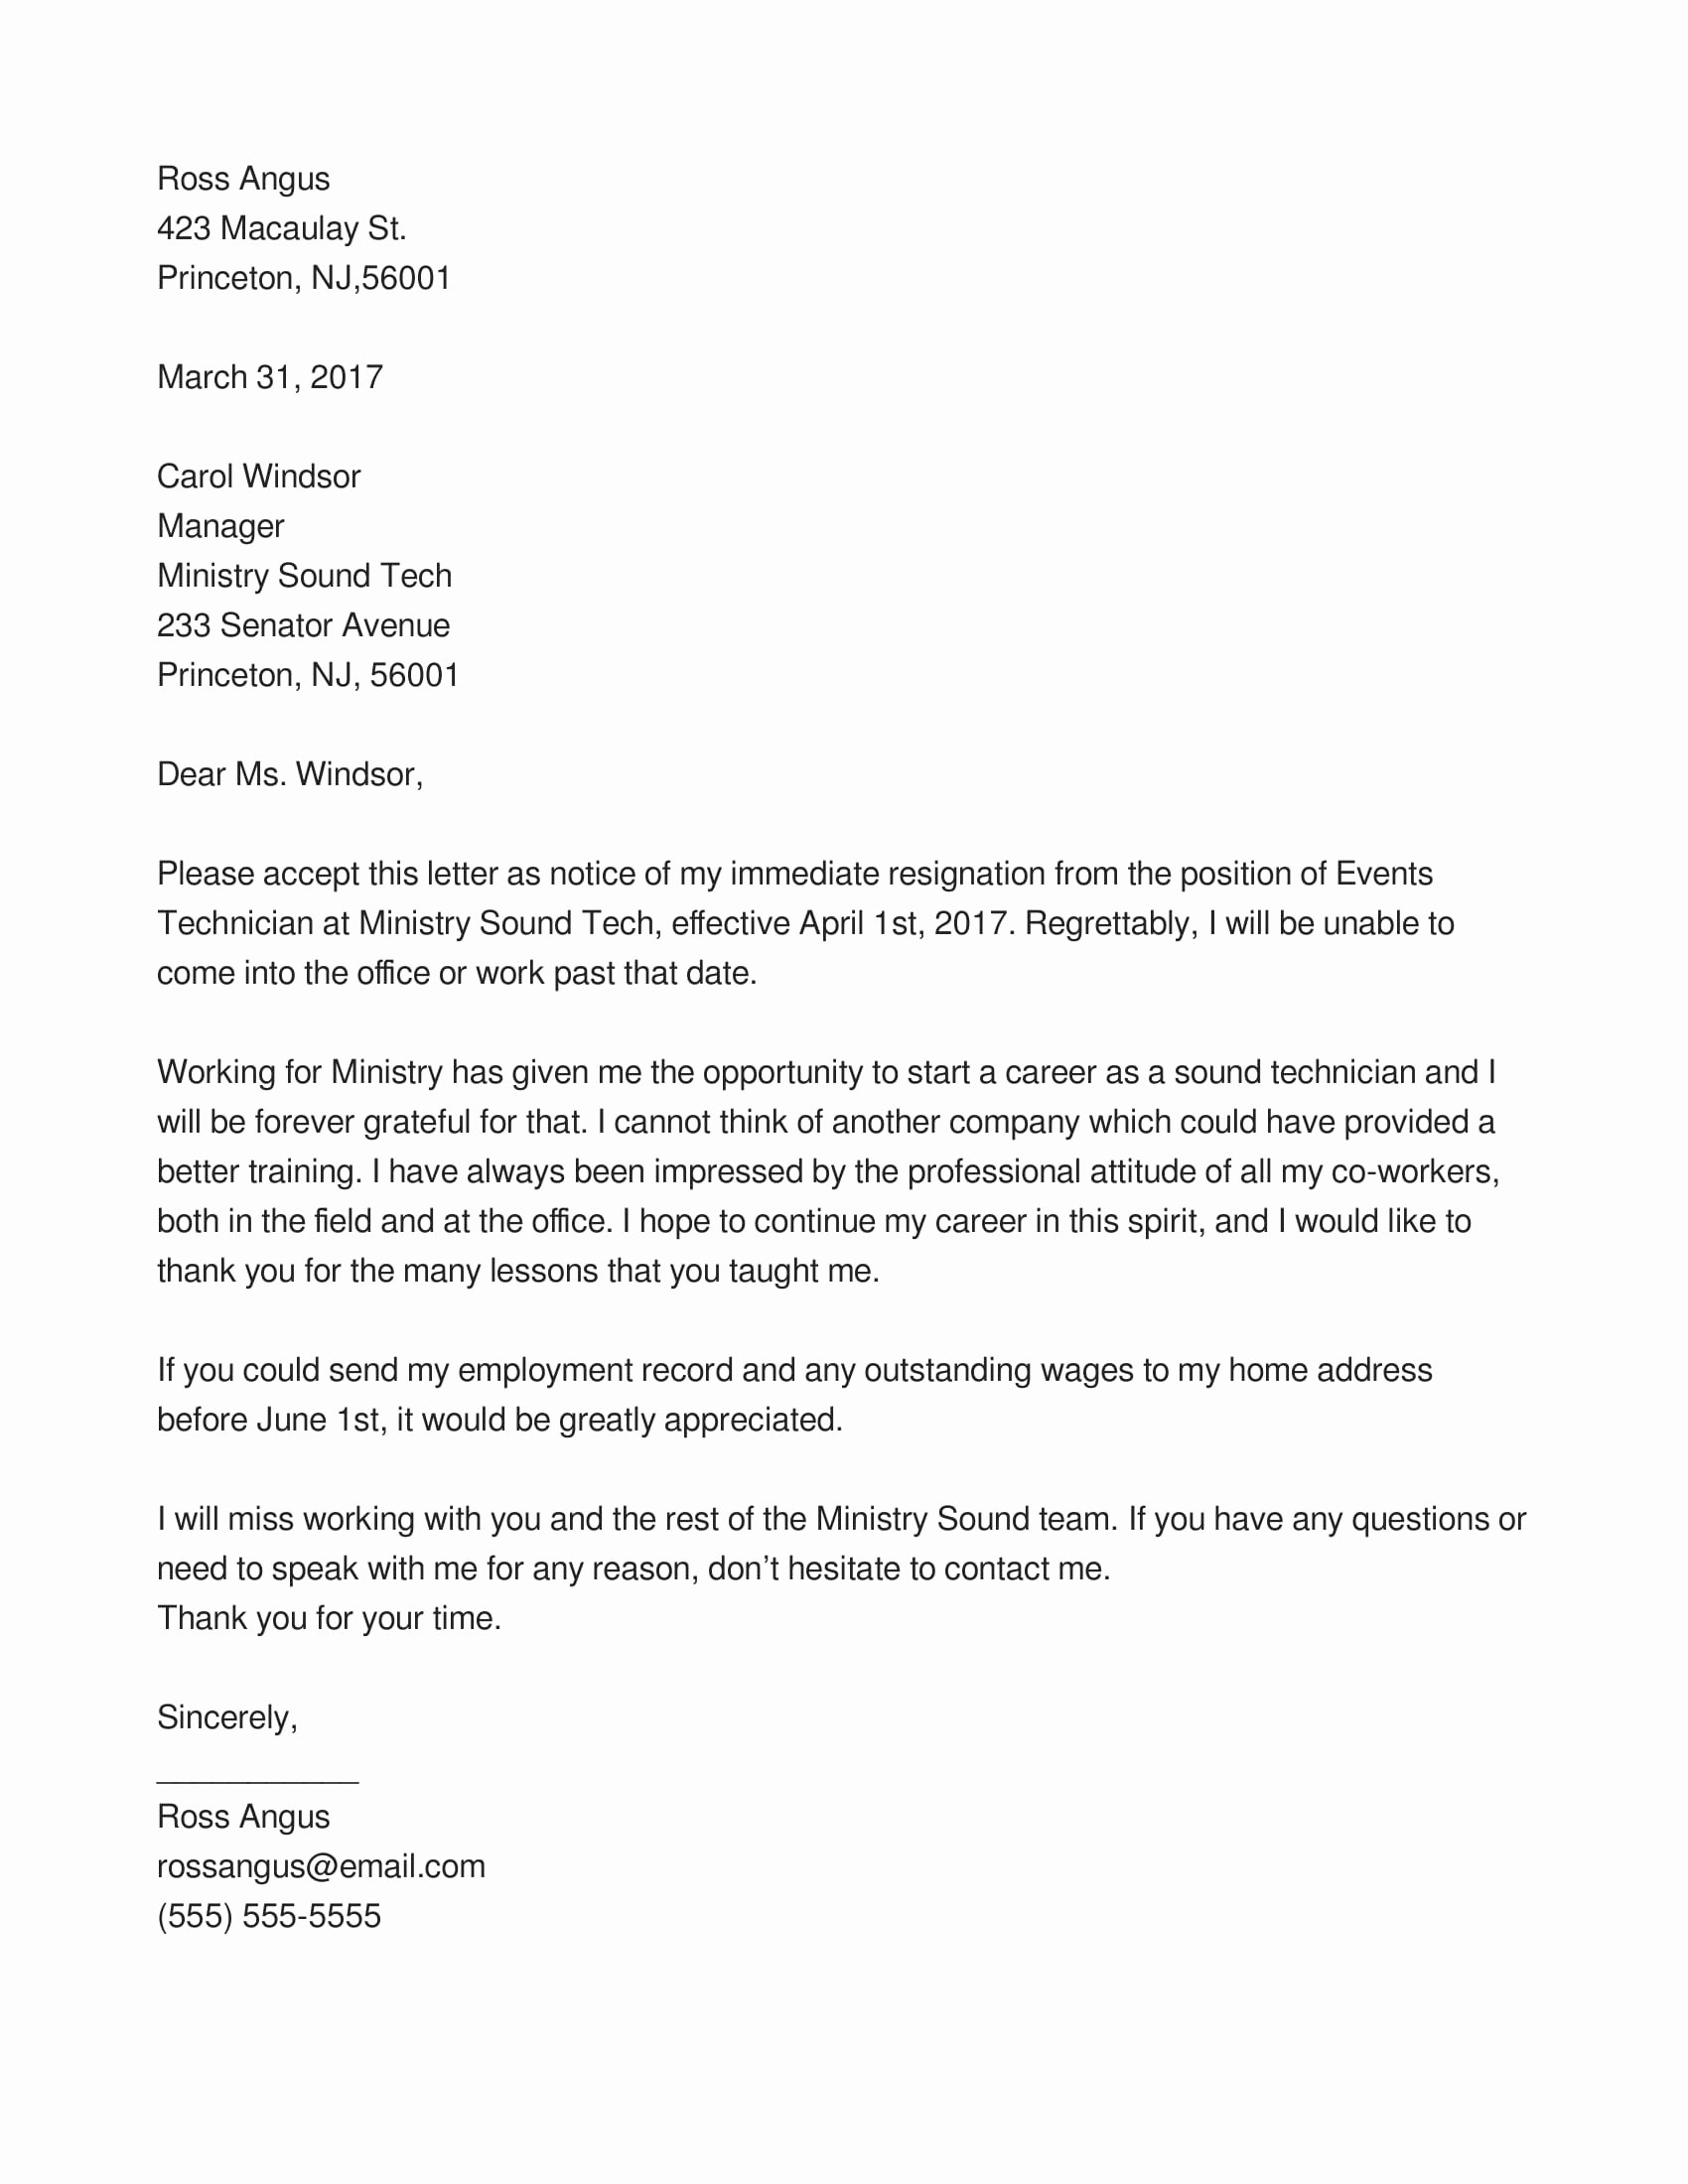 Resignation Letter for Family Reason Elegant 7 Immediate Resignation Letter Examples Pdf Doc